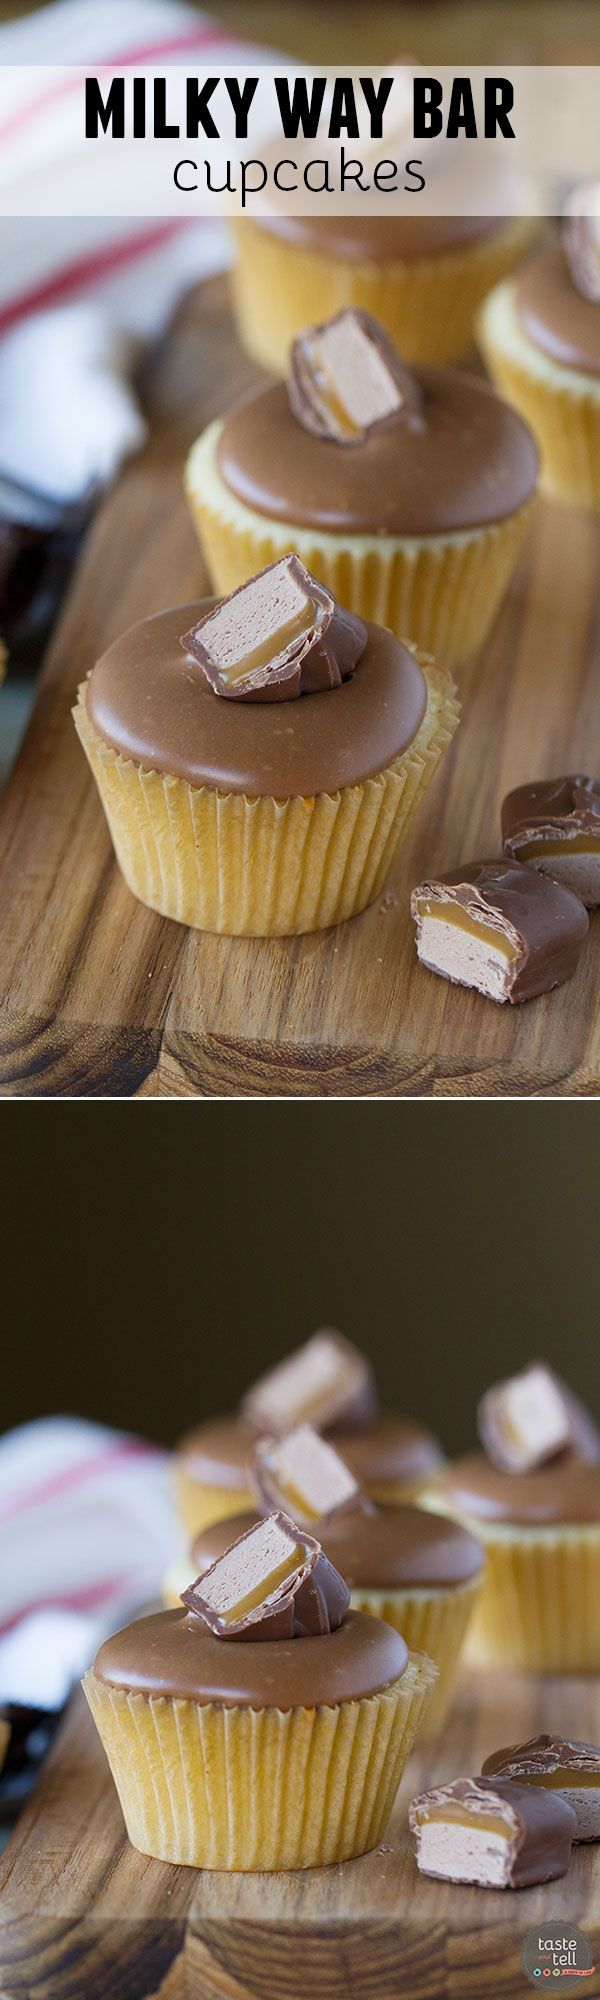 A frosting made from candy bars! These simple yellow cupcakes are topped with a sweet and smooth Milky Way Bar frosting. Candy bar lovers will love these Milky Way Bar Cupcakes!